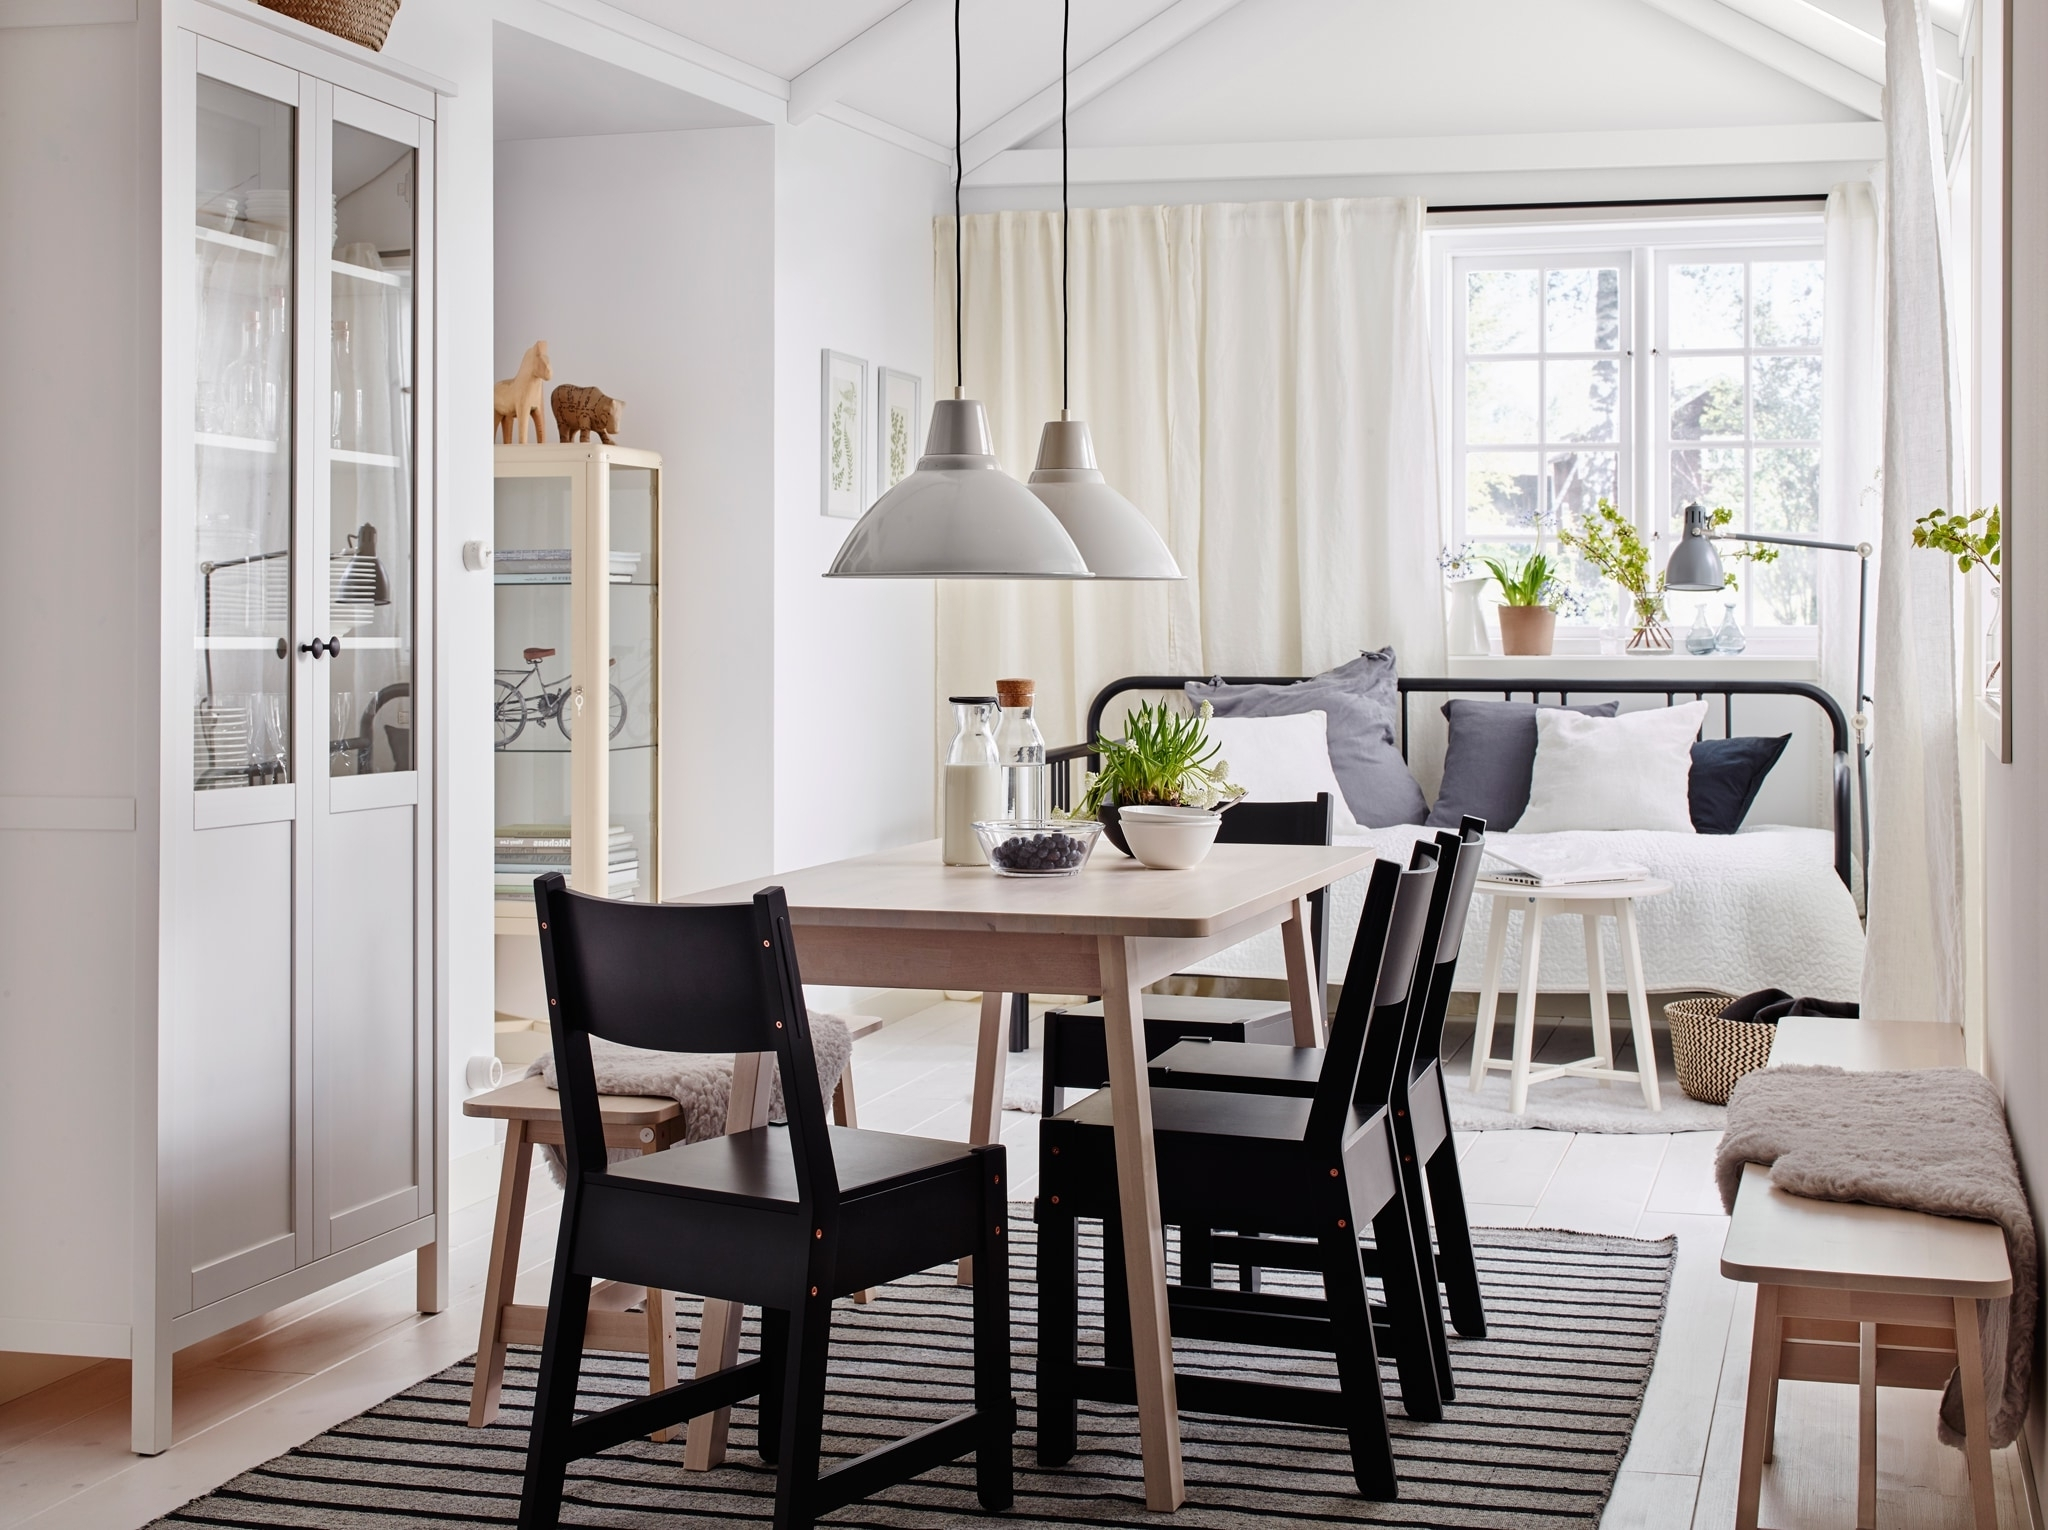 Scandinavian Dining Tables And Chairs Intended For Favorite Dining Room Furniture & Ideas (View 22 of 25)